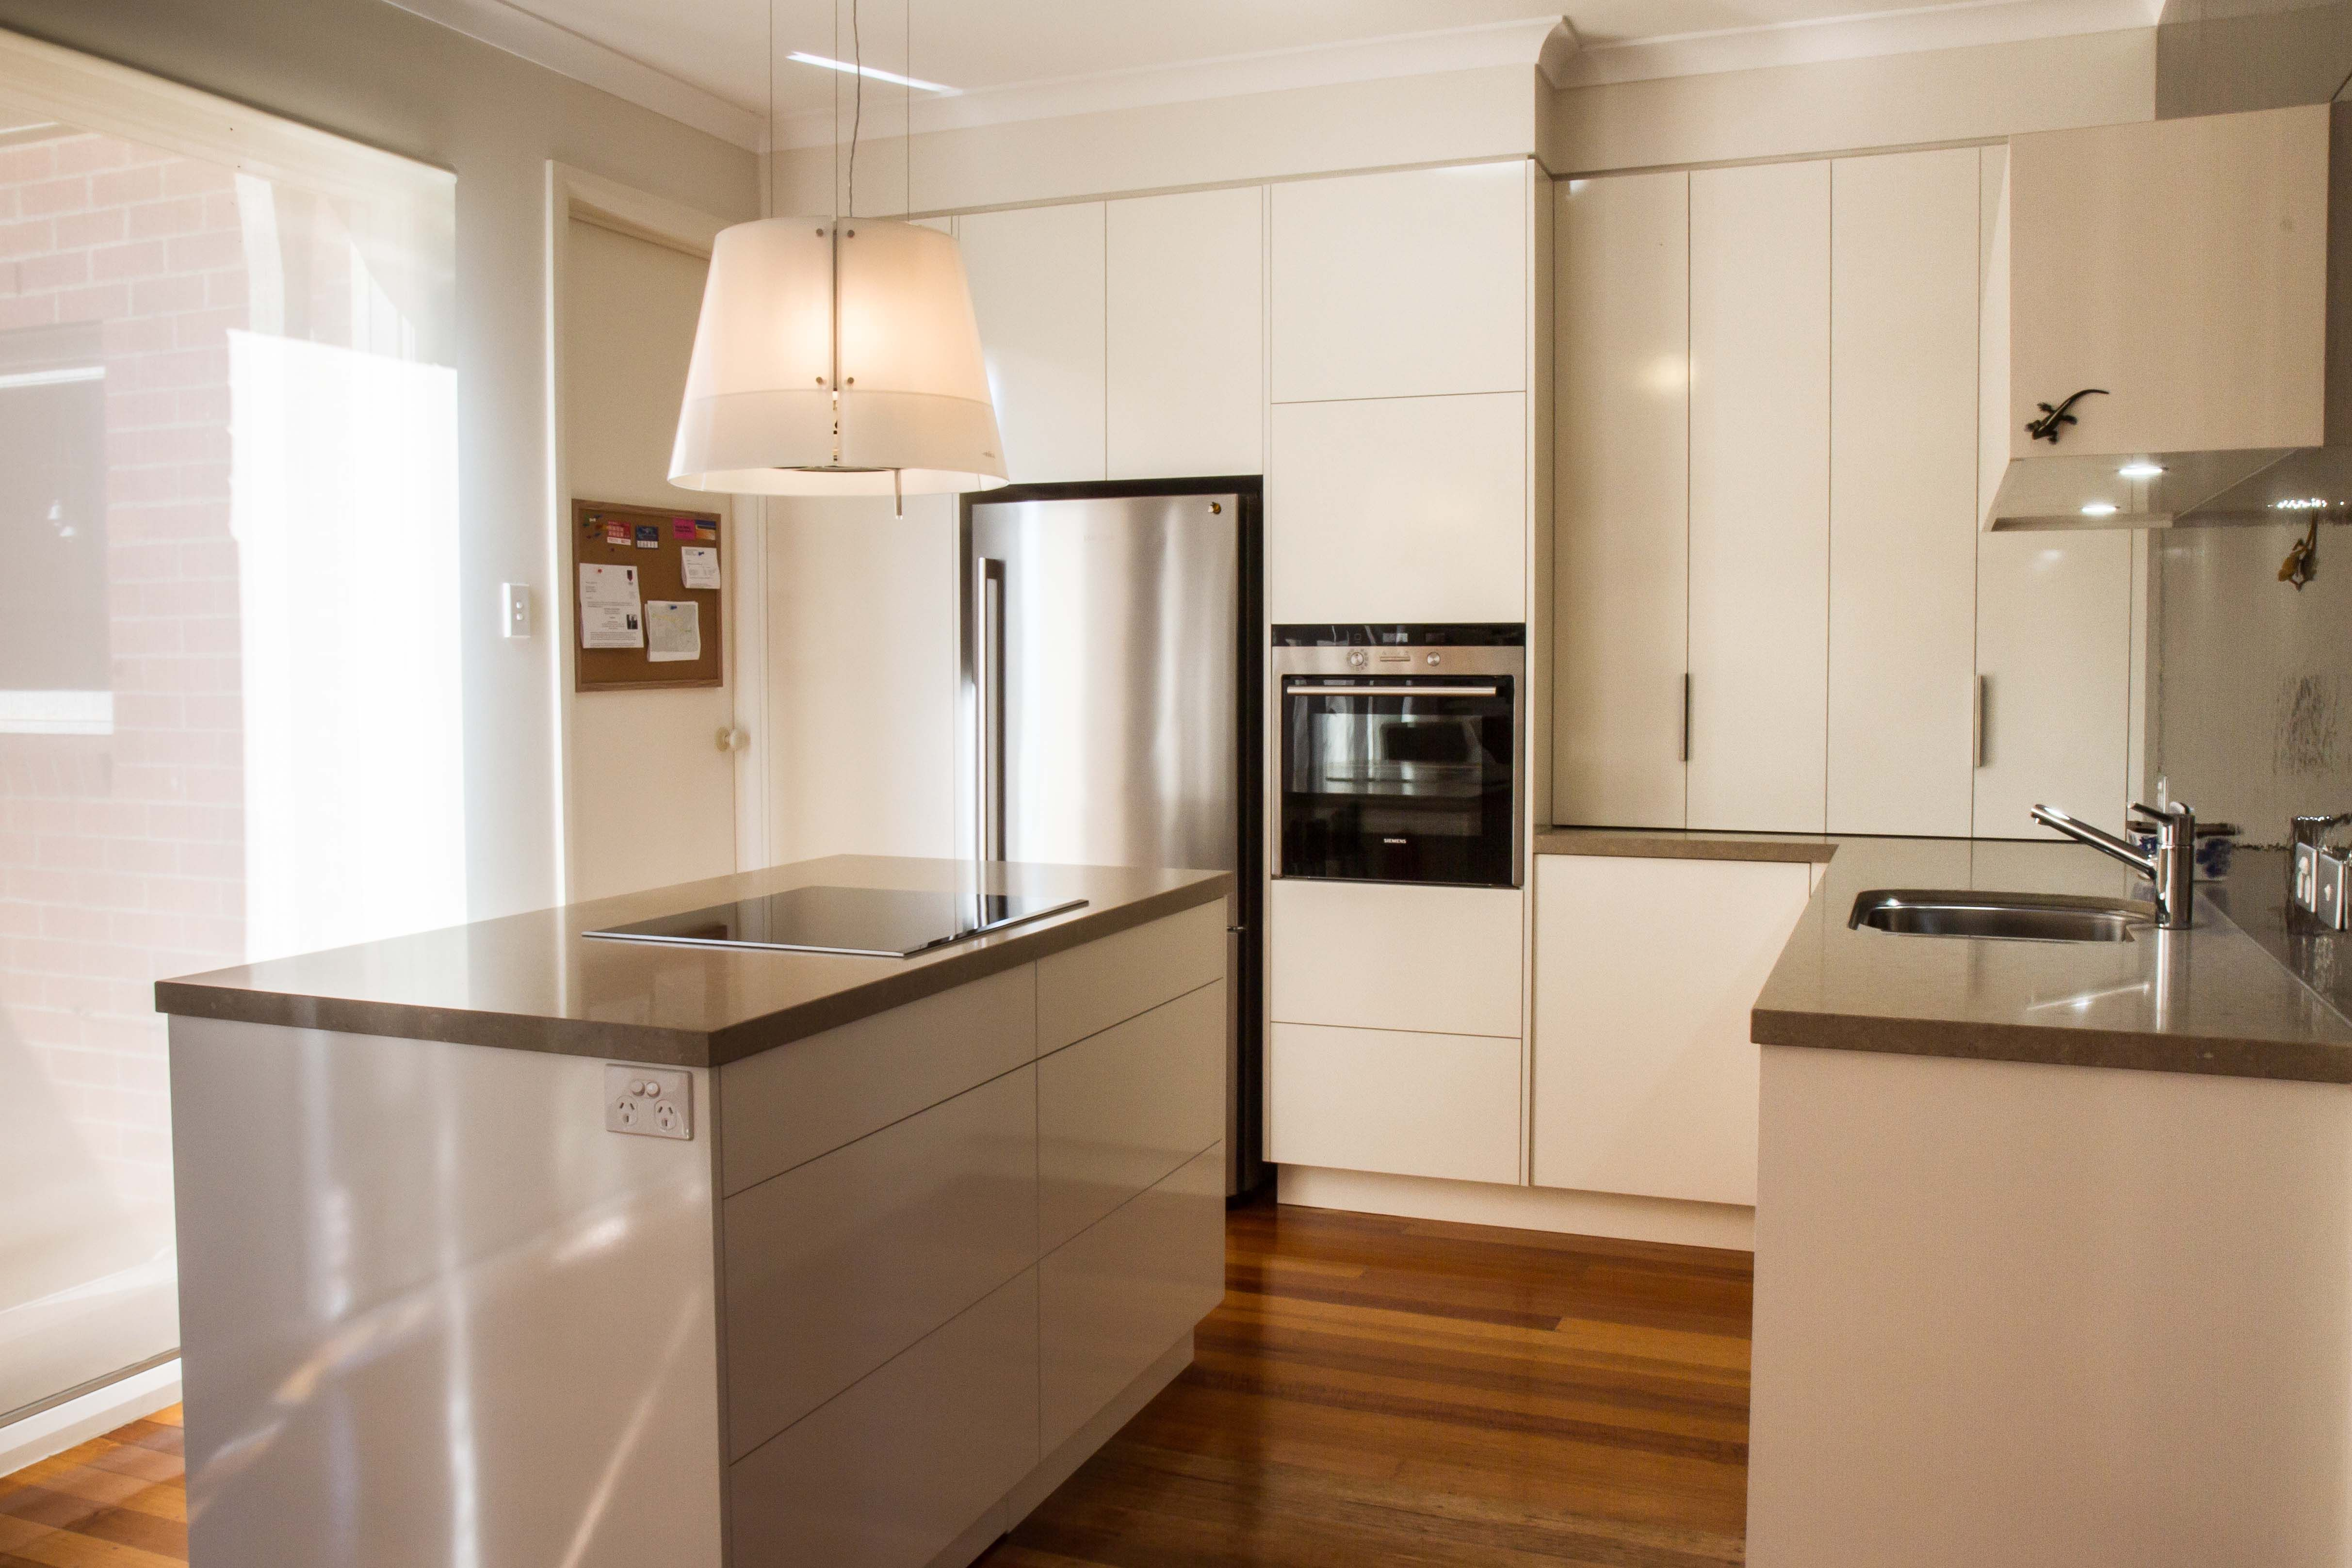 Small Kitchen With Island Bench Gloss Finish Www Thekitchendesigncentre Com A Kitchen Design Centre Coastal Bedroom Decorating Coastal Decorating Living Room